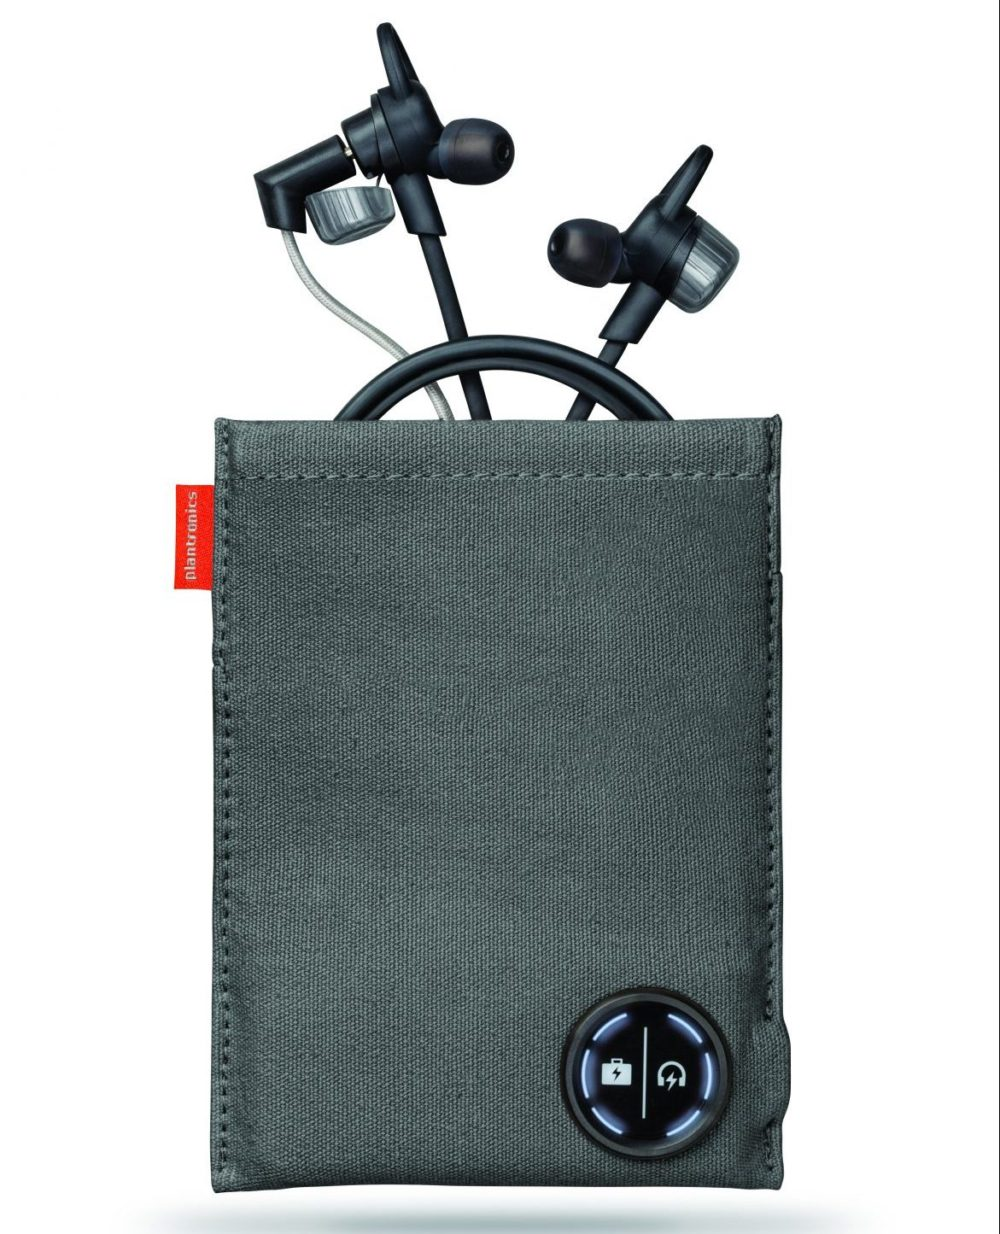 BackBeat GO 3 with pouch